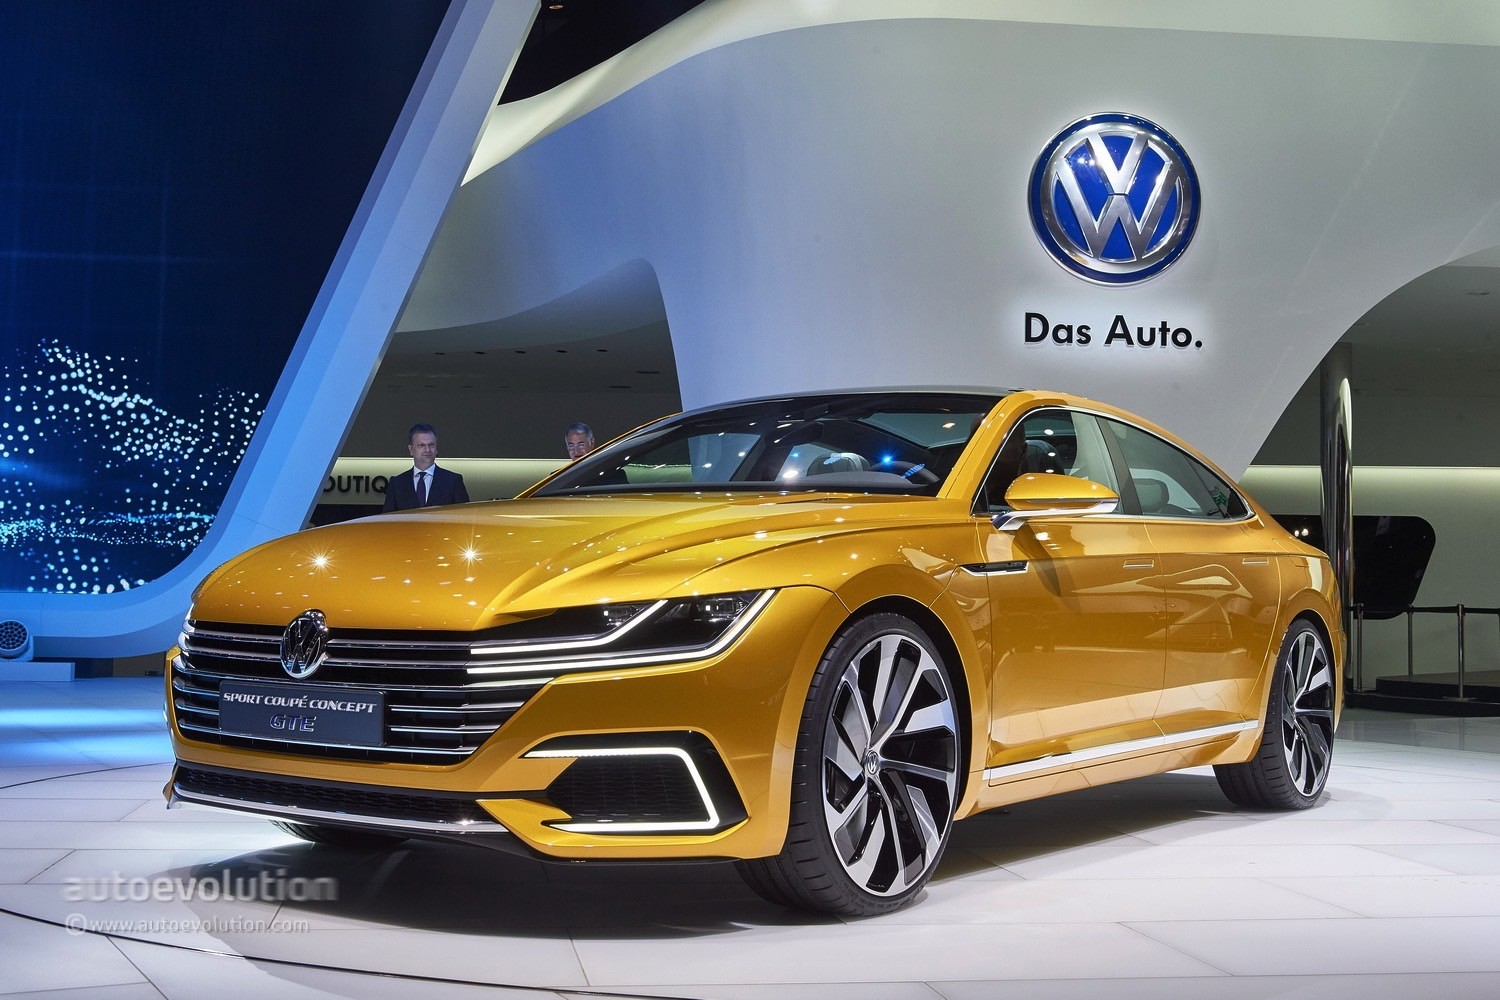 2015 VW Sport Coupe Concept GTE Revealed with V6 Turbo, Hybrid AWD - Video, Live Photos ...